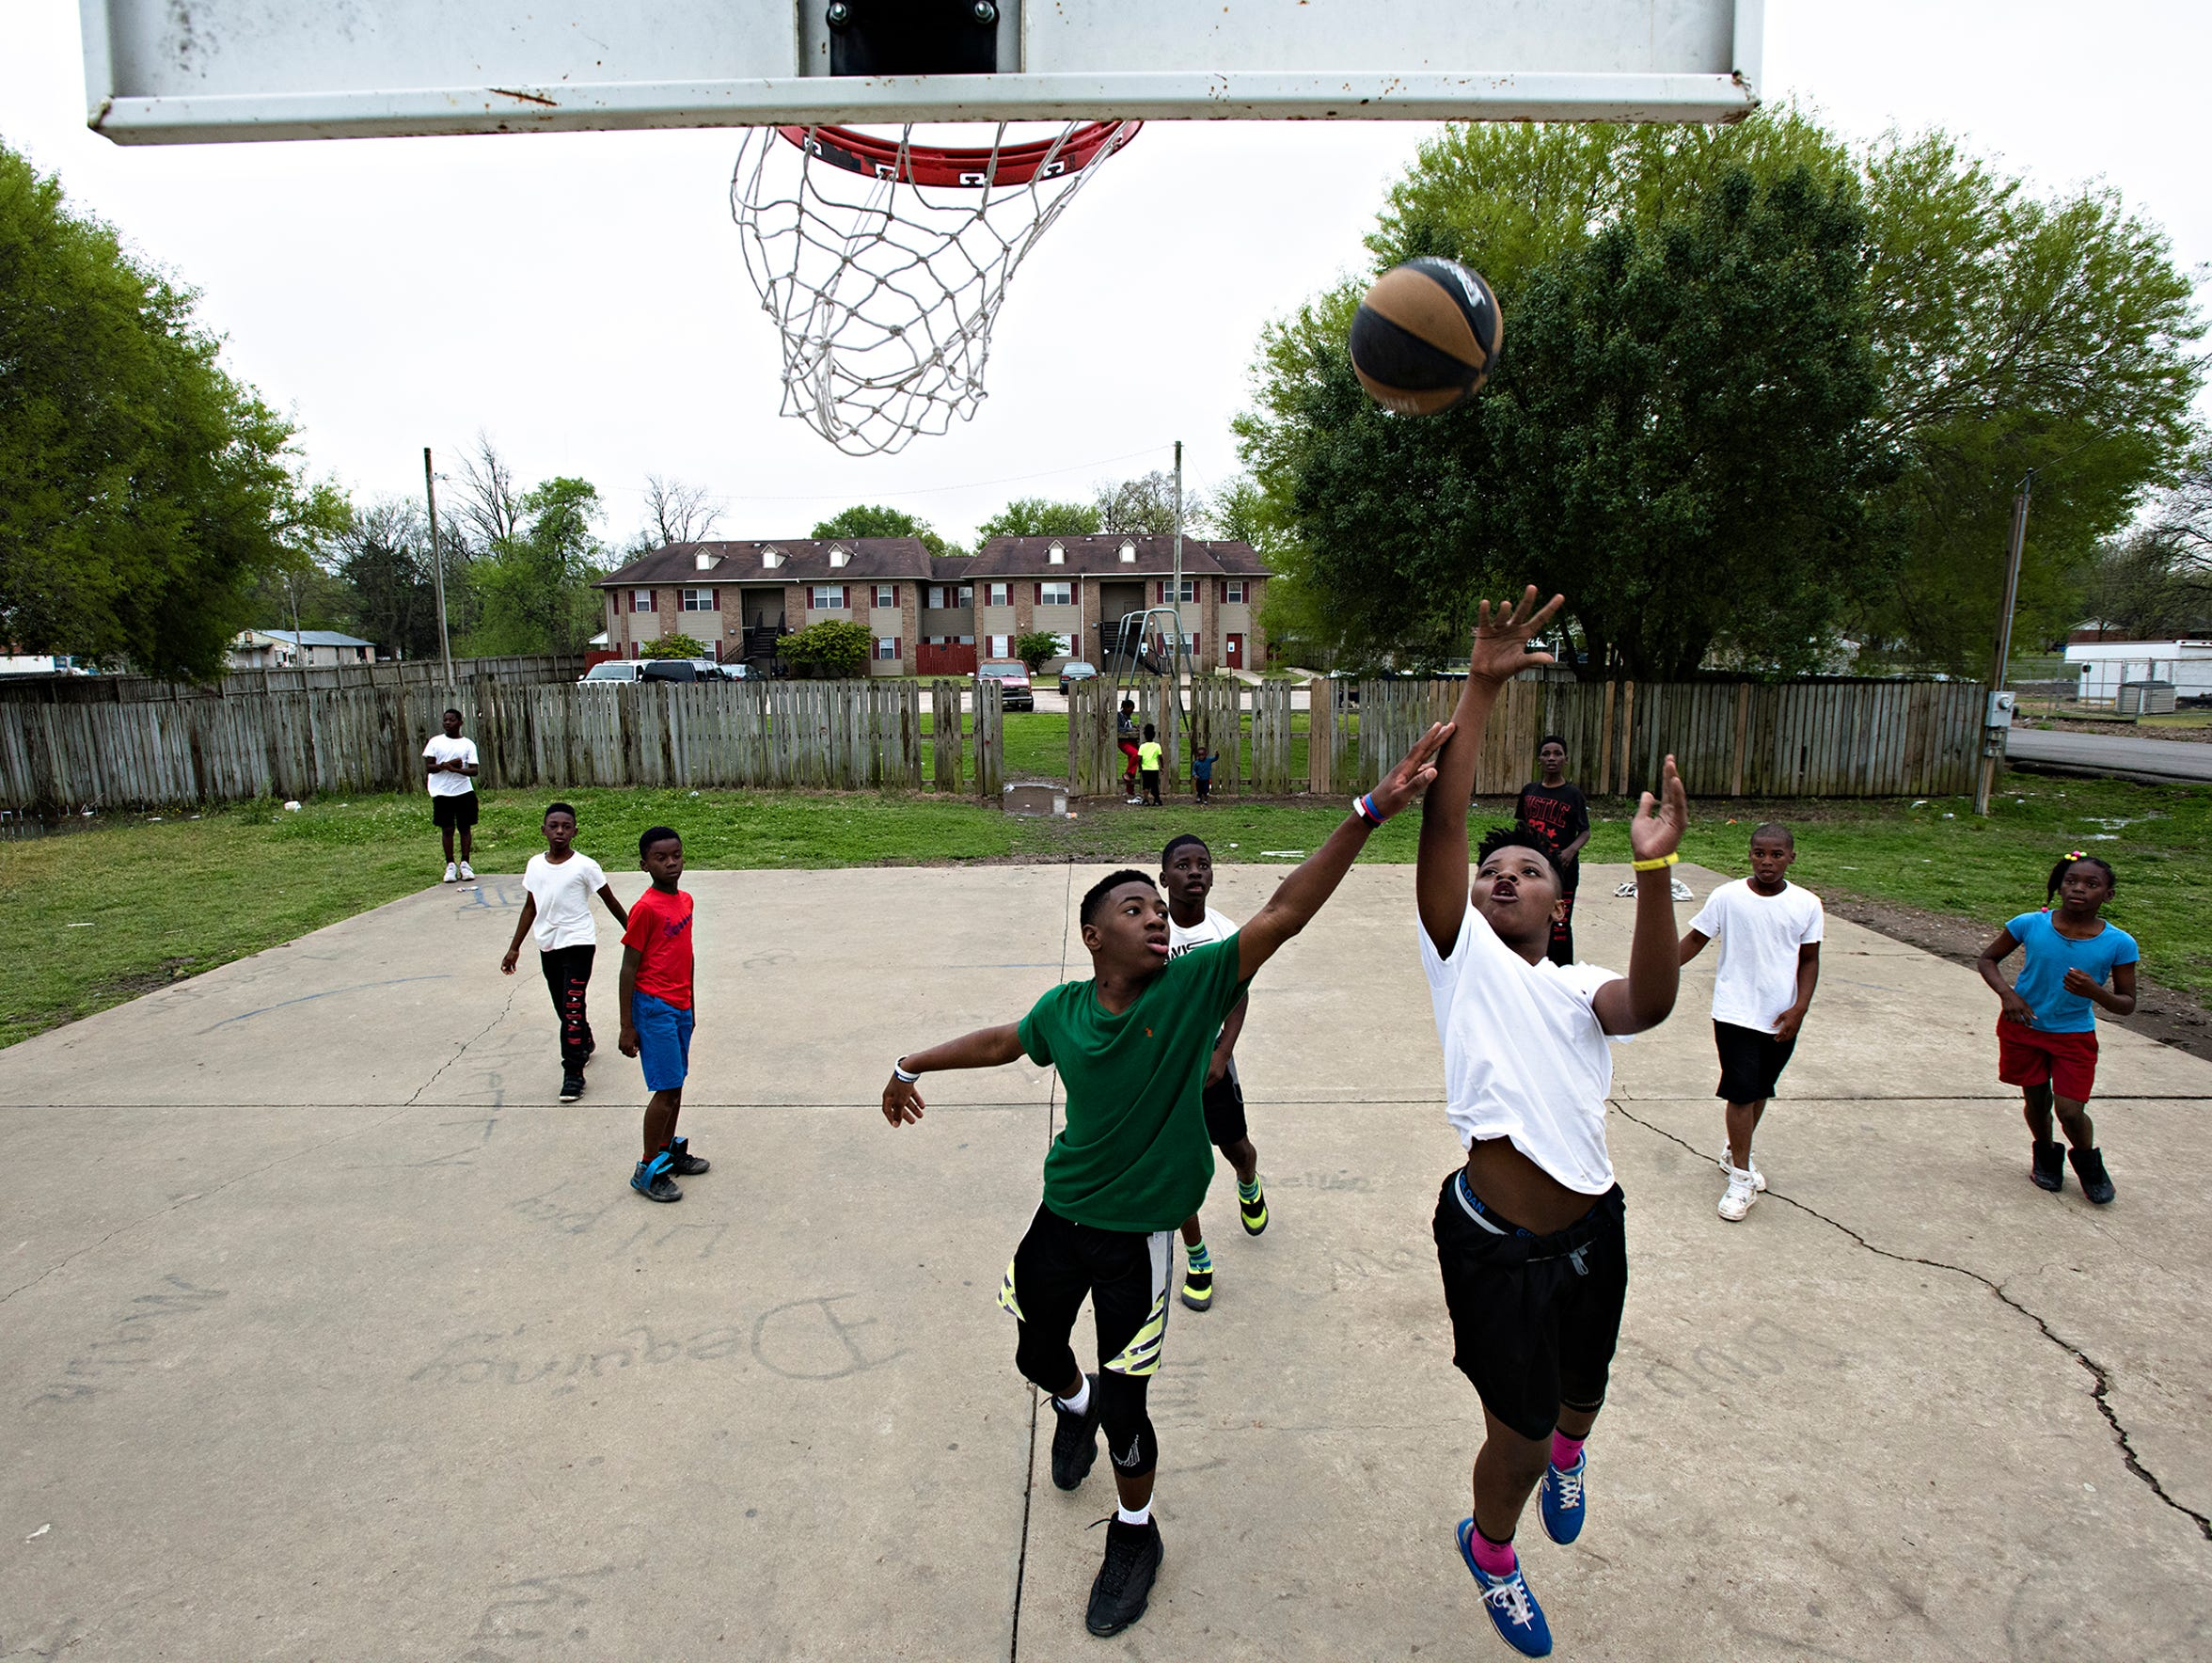 Children play basketball on a court near public housing